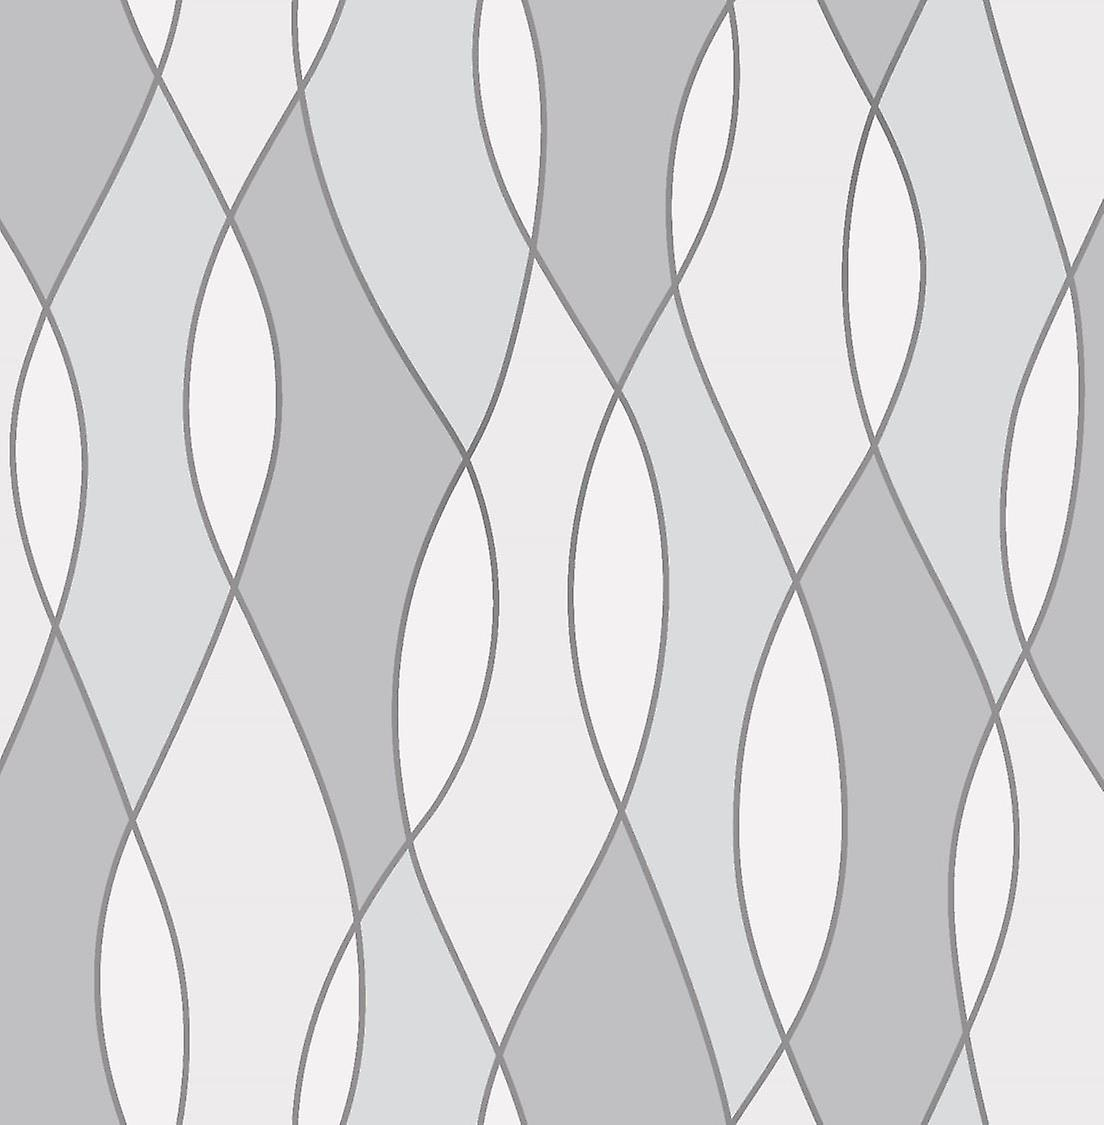 3D Effect Apex Wave Geometric Wallpaper Grey White Metallic Silver Fine Decor